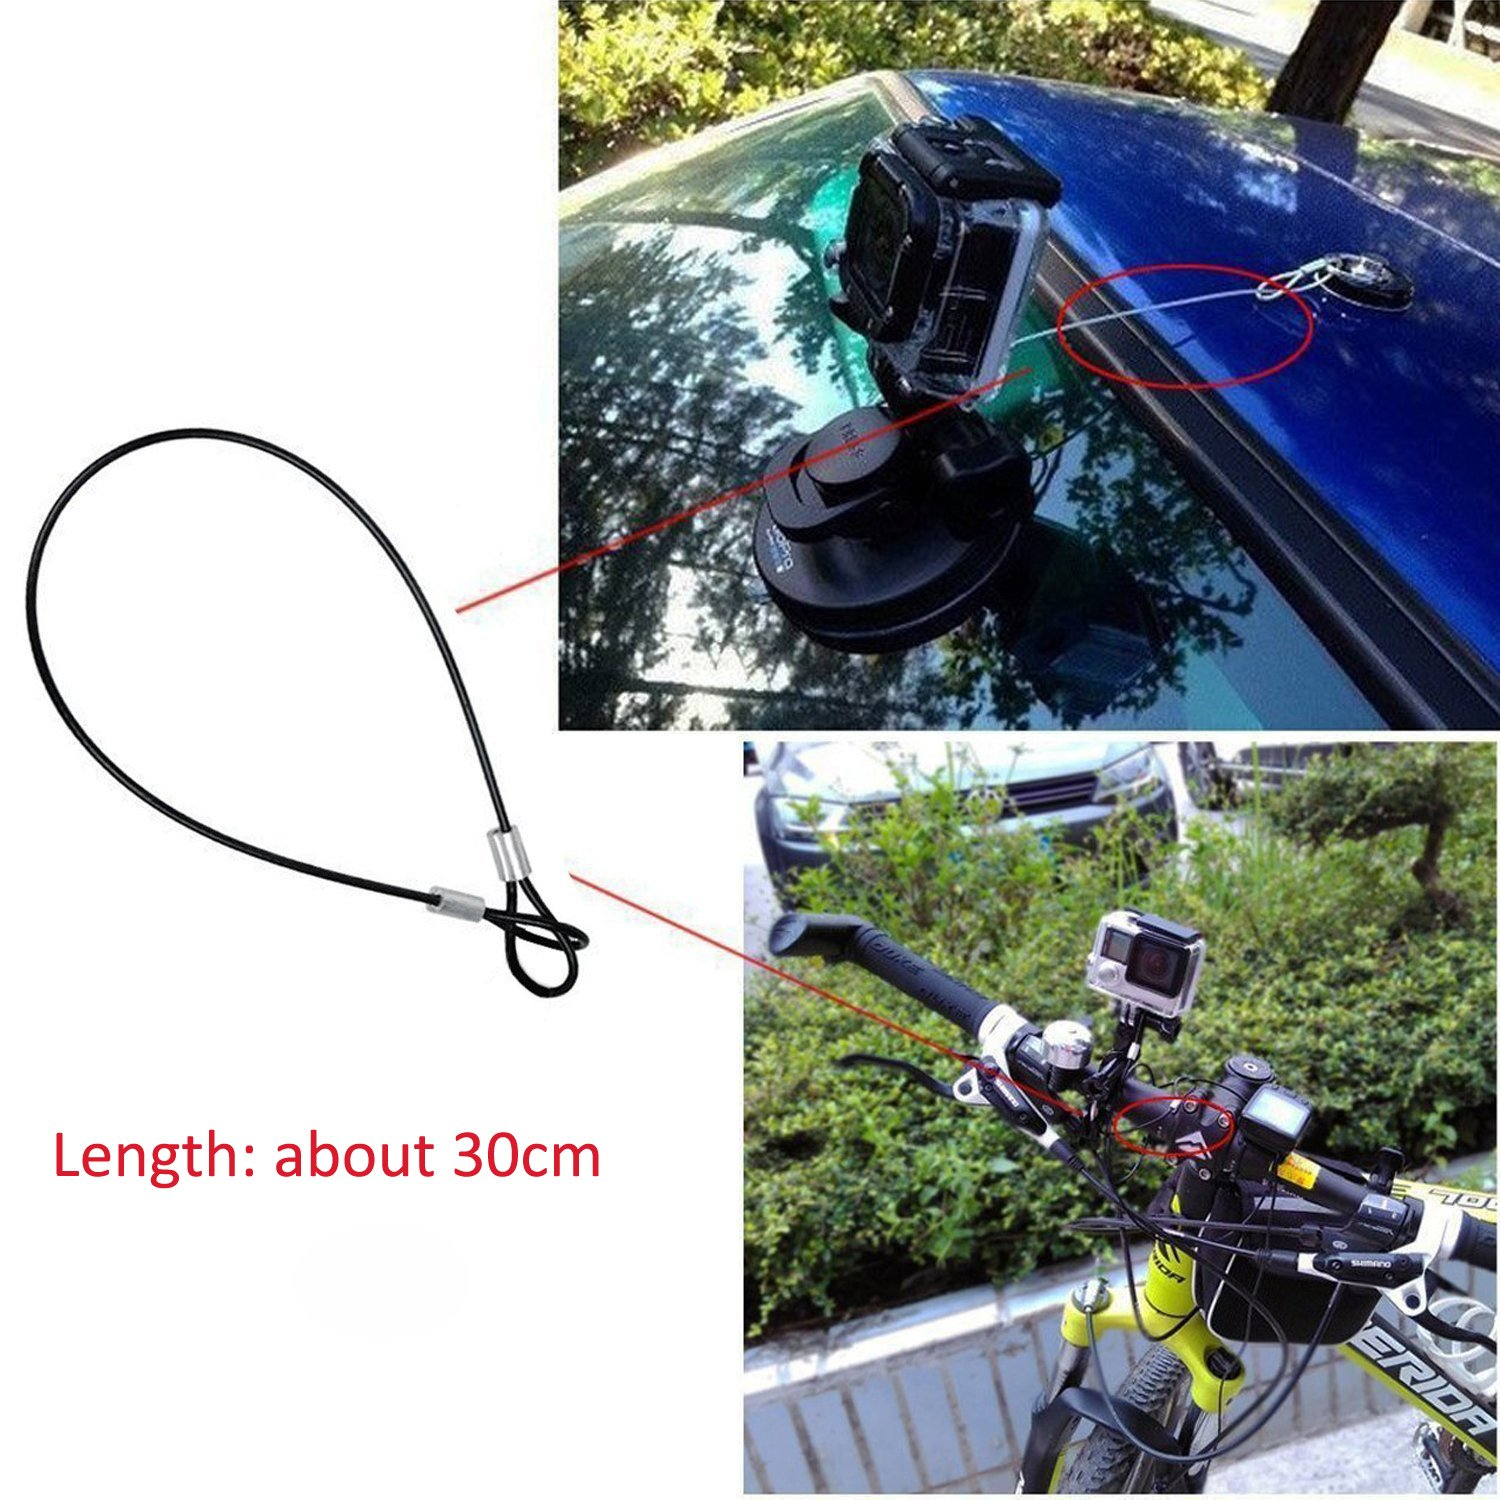 MyArmor Backpack Bag Strap Quick Release Clip Clamp Mount with Stainless Steel Safety Tether Keeper Lanyard 30cm for GoPro Hero 5/4/3/2/HD Action Camera